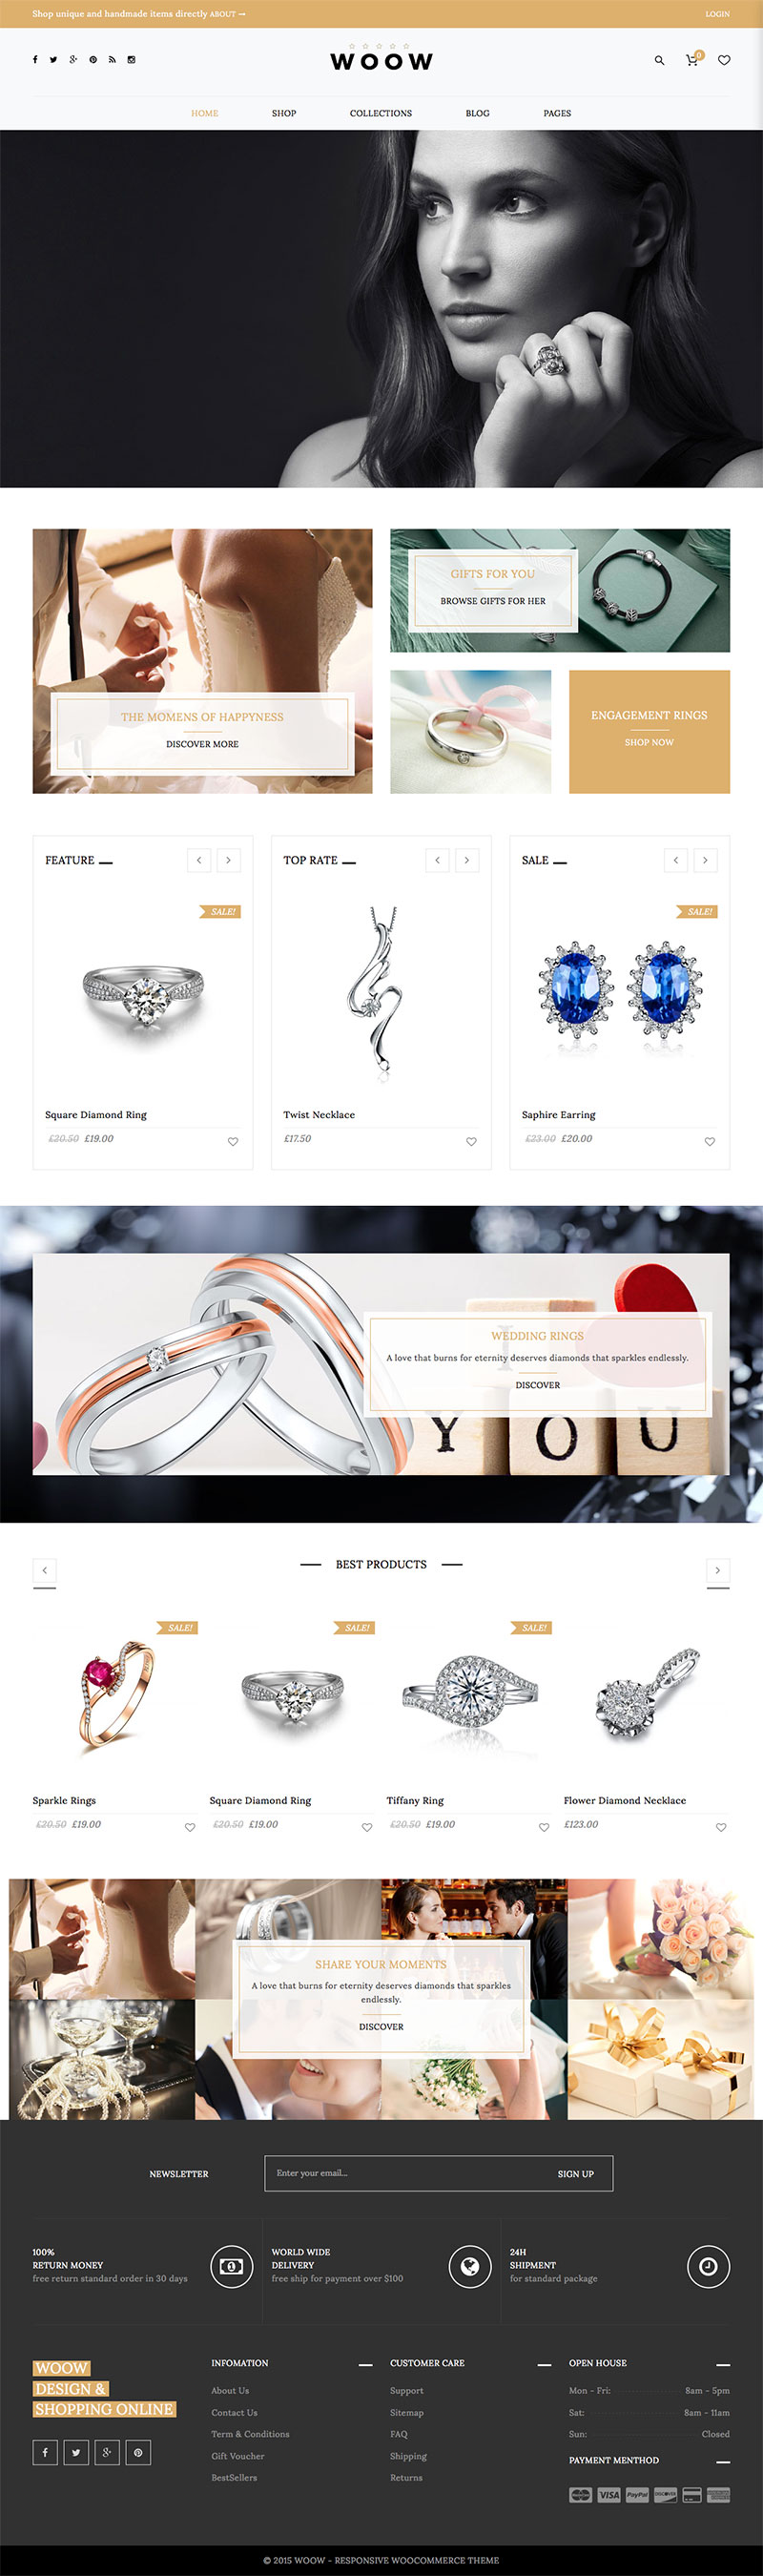 Best WordPress Premium Themes Collection for Jewelry Store - WOOW - Responsive WooCommerce Theme